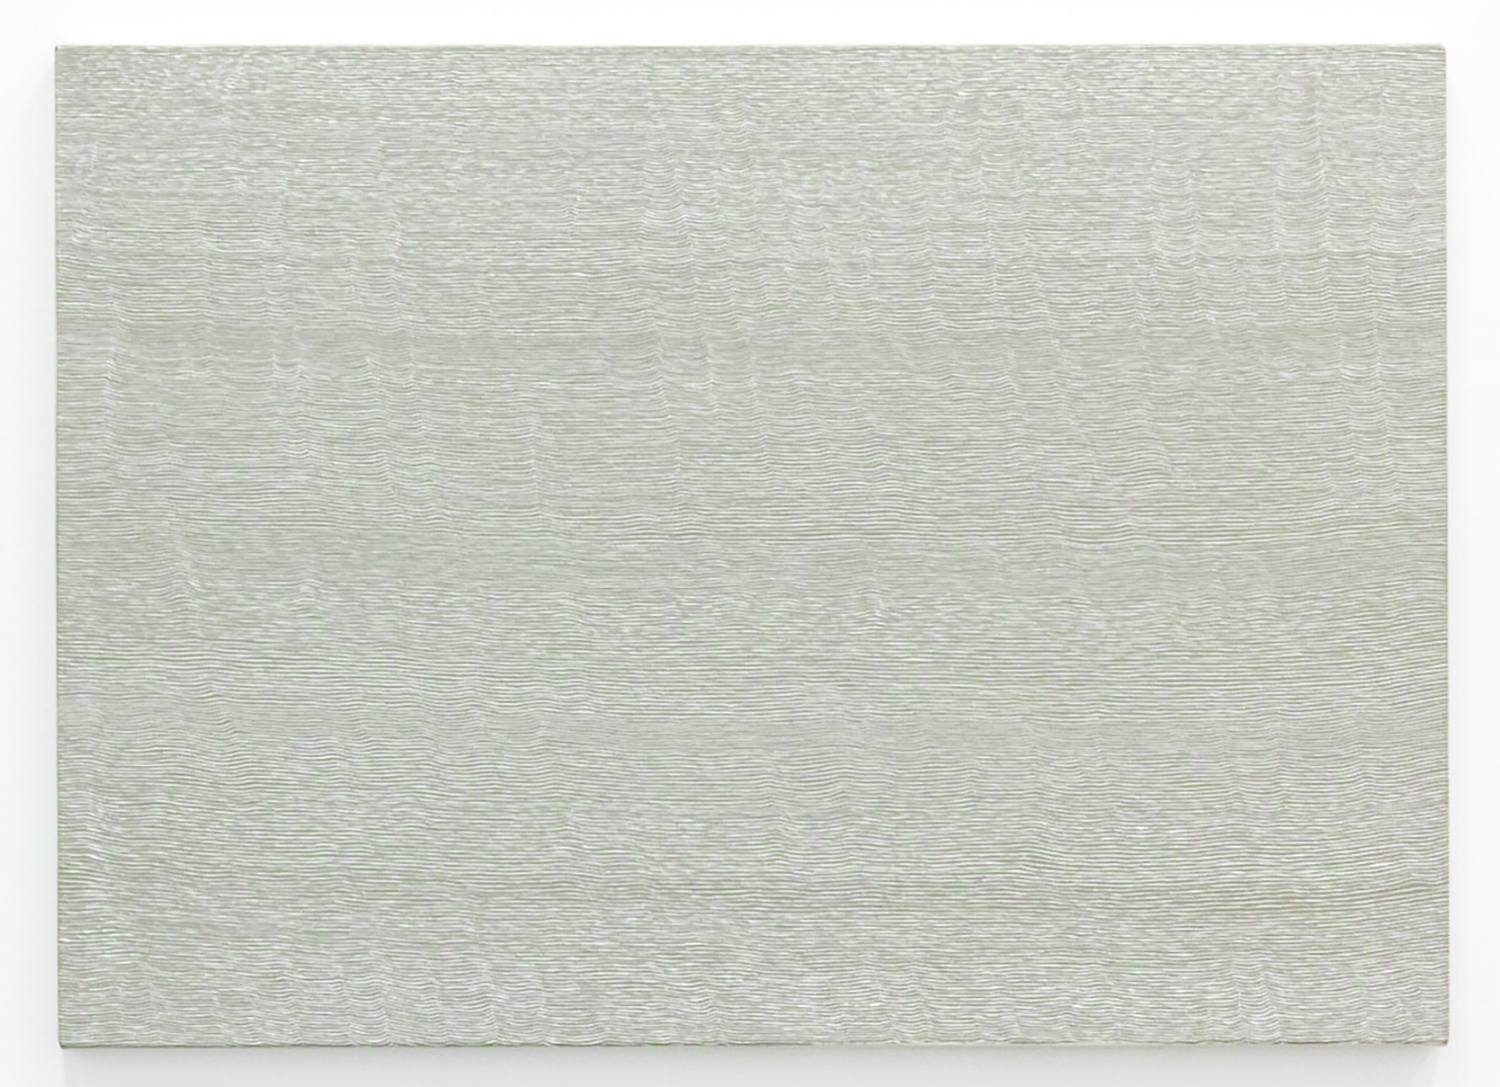 Untitled-Breath Warm gray<br>Acrylic & gesso on canvas, 56.5 x 78 cm 1996